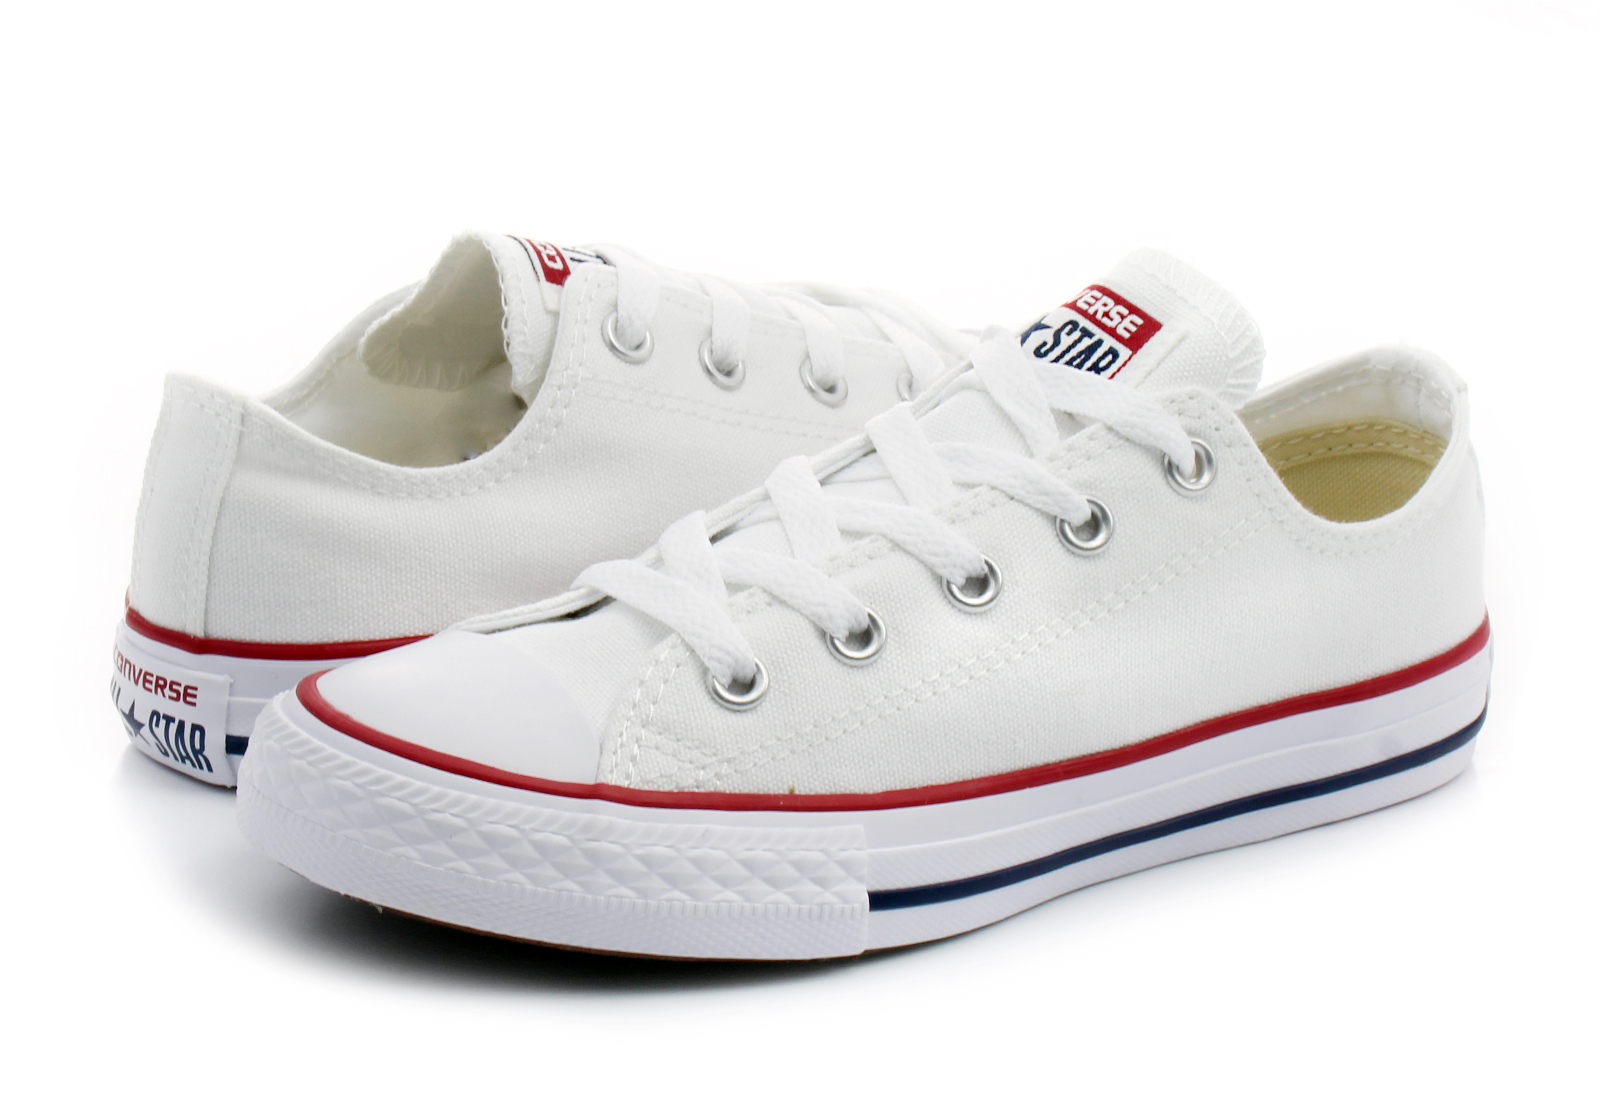 5b0bf78139 Converse Sneakers - Ct As Kids Core Ox - 3J256C - Online shop for ...